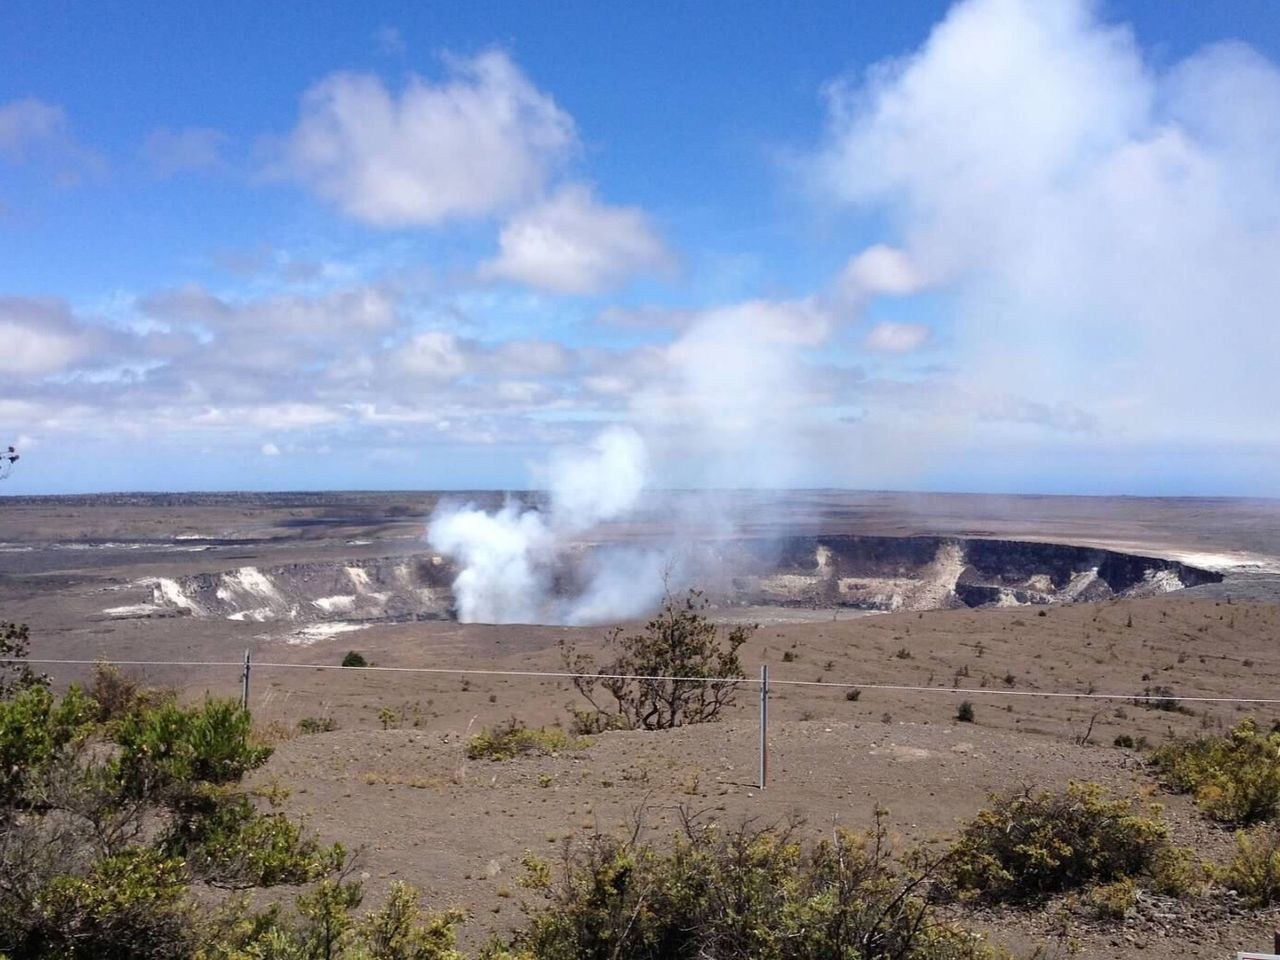 Halemaumau crater with smoke from flowing lava. Volcano Smoke Outdoor Photography Outdoors Photograpghy  Travel Destinations Traveling Taking Photos Eyem Awsome Solitude Inspired Wilderness Trail Hiking Hikingadventures Camping Volcano National Park